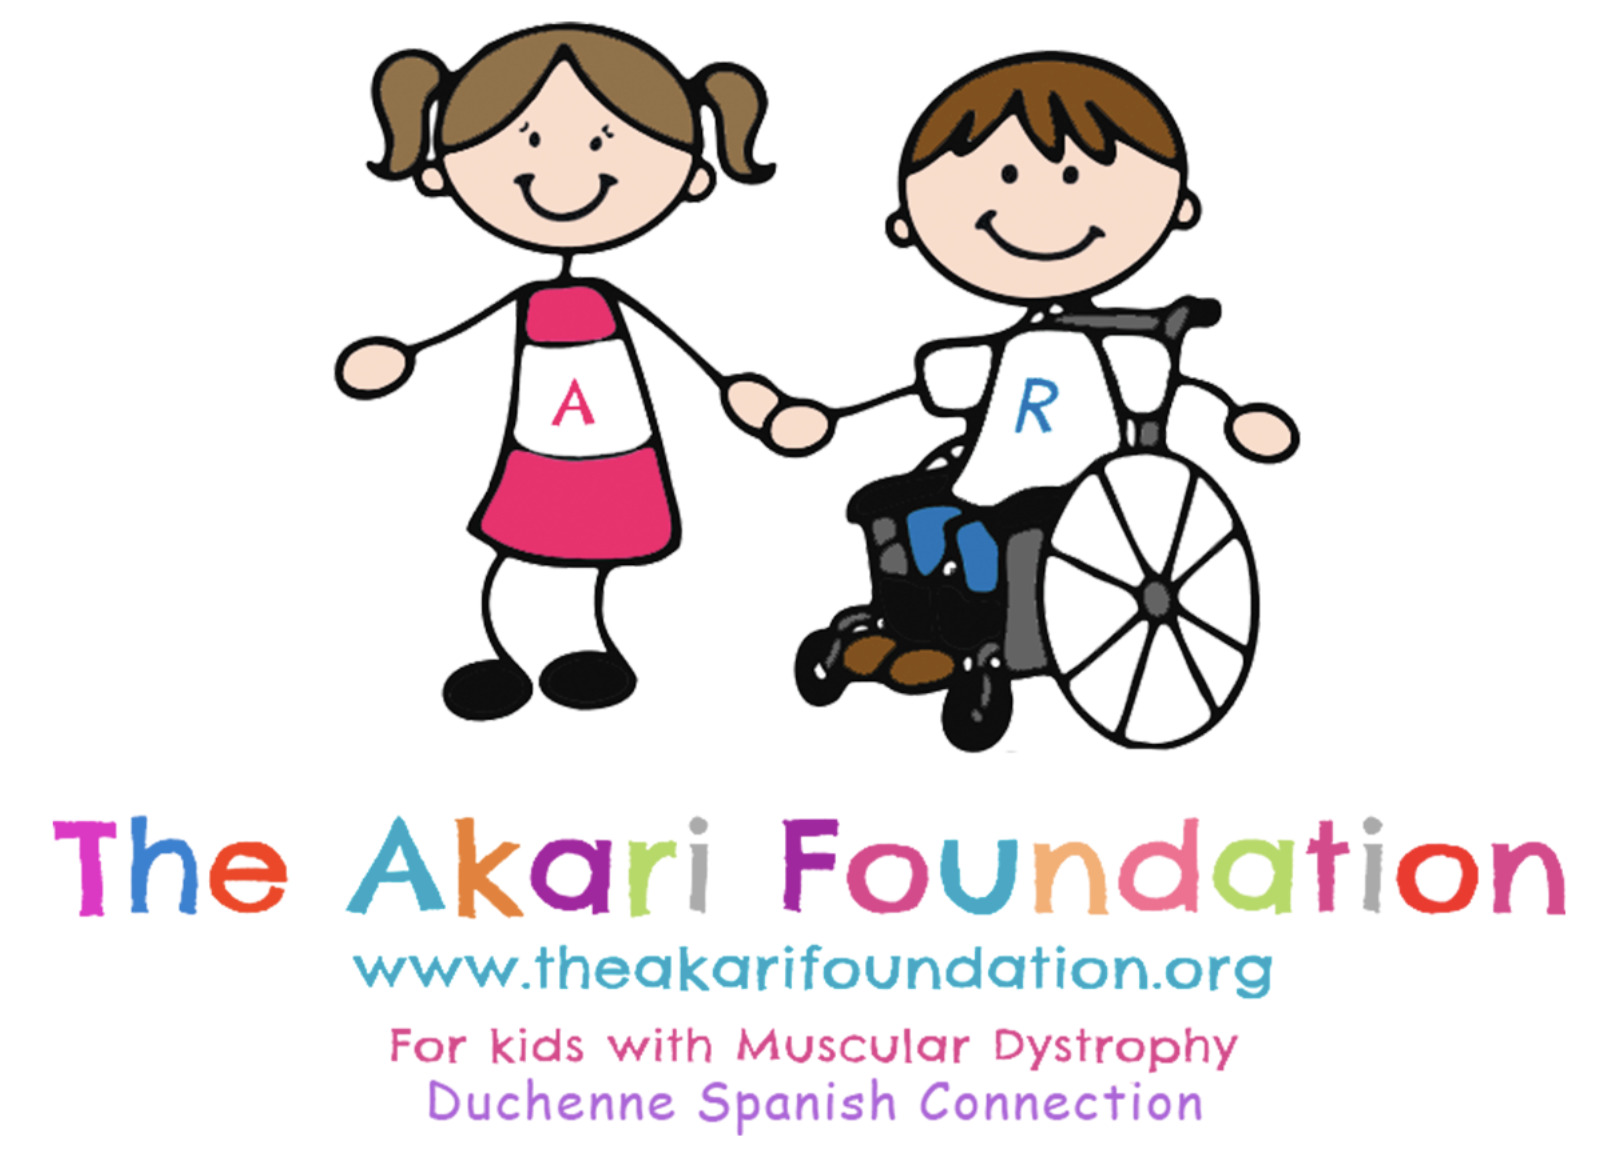 The Akari Foundation for Duchenne muscular dystrophy affected in Texas, United States